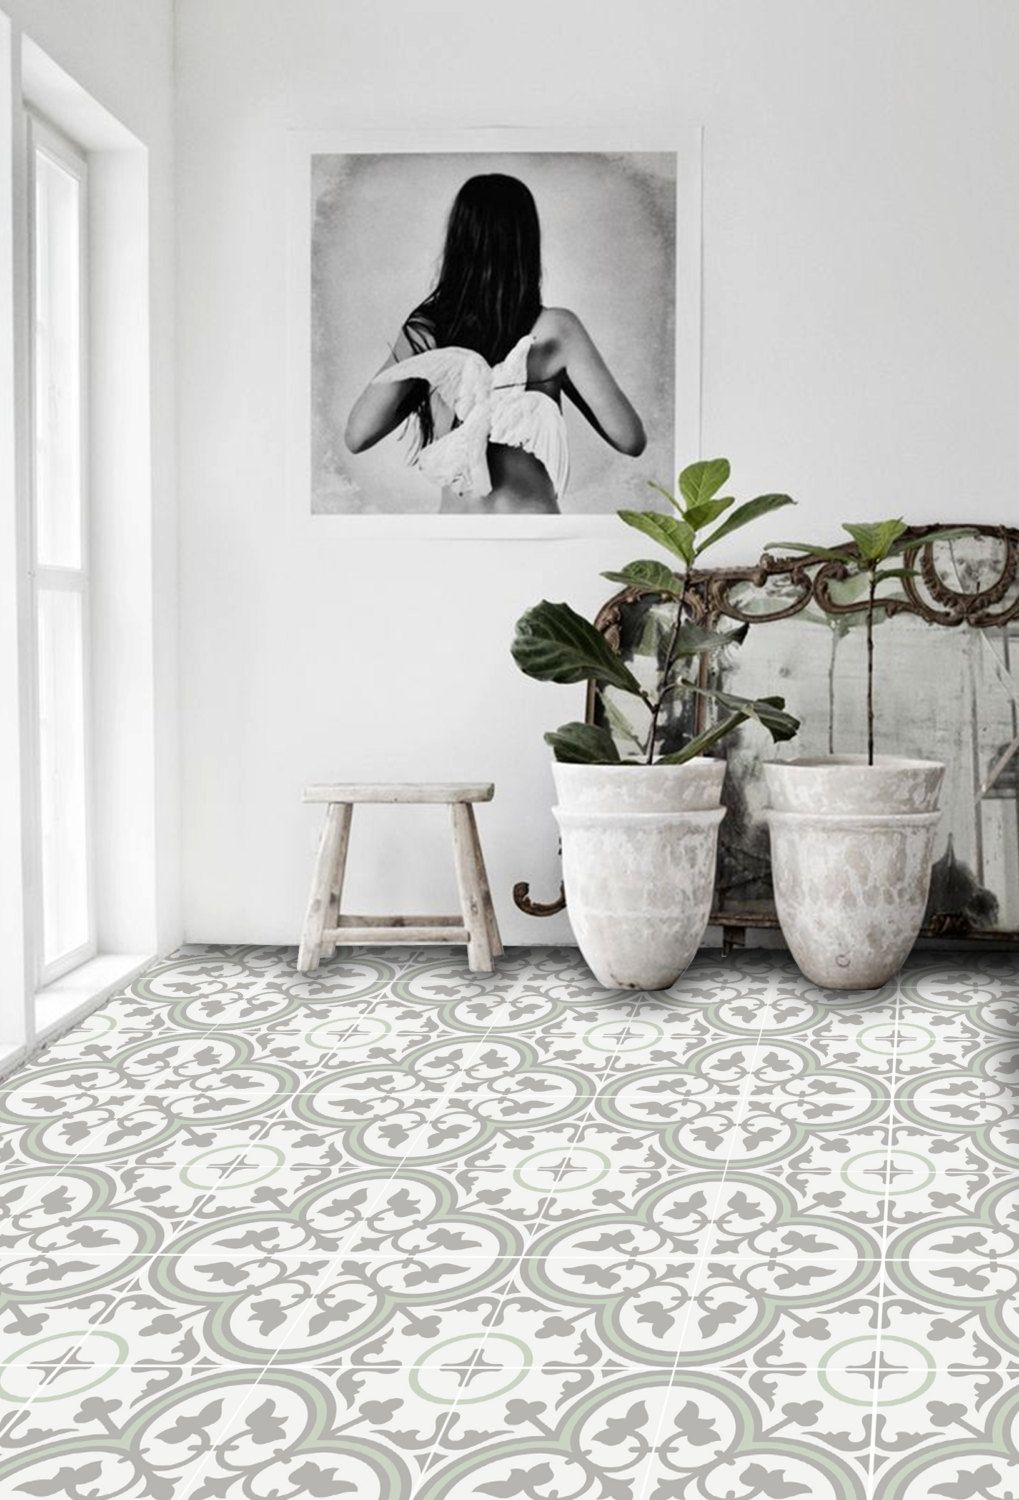 Vinyl Floor Tile Sticker - Floor decals - Carreaux Ciment Encaustic ...